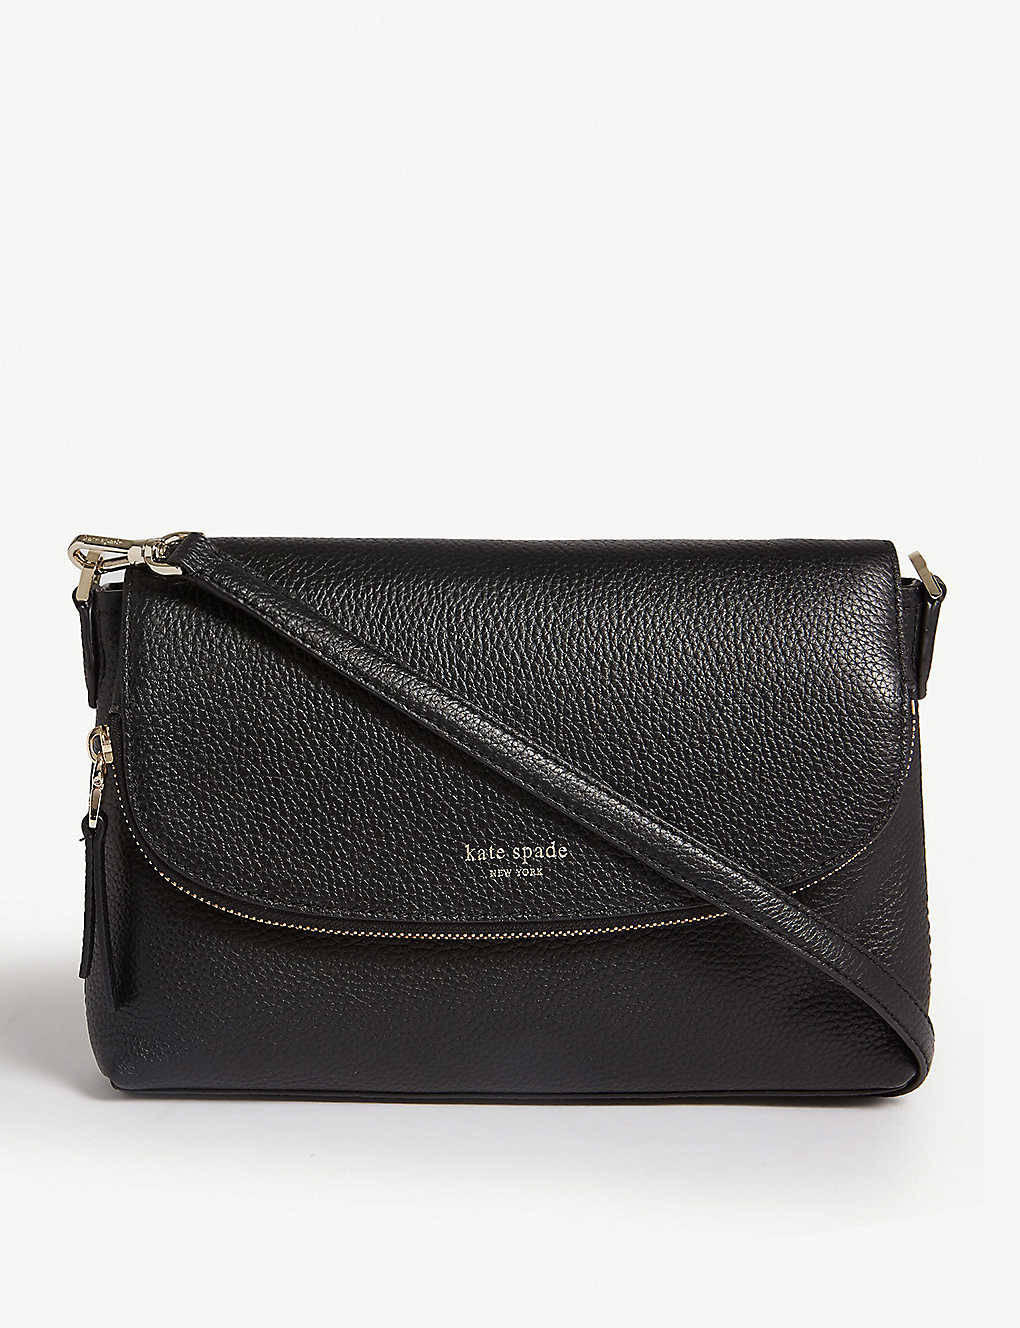 Kate Spade New York Polly Large Convertible Leather Cross Body Bag